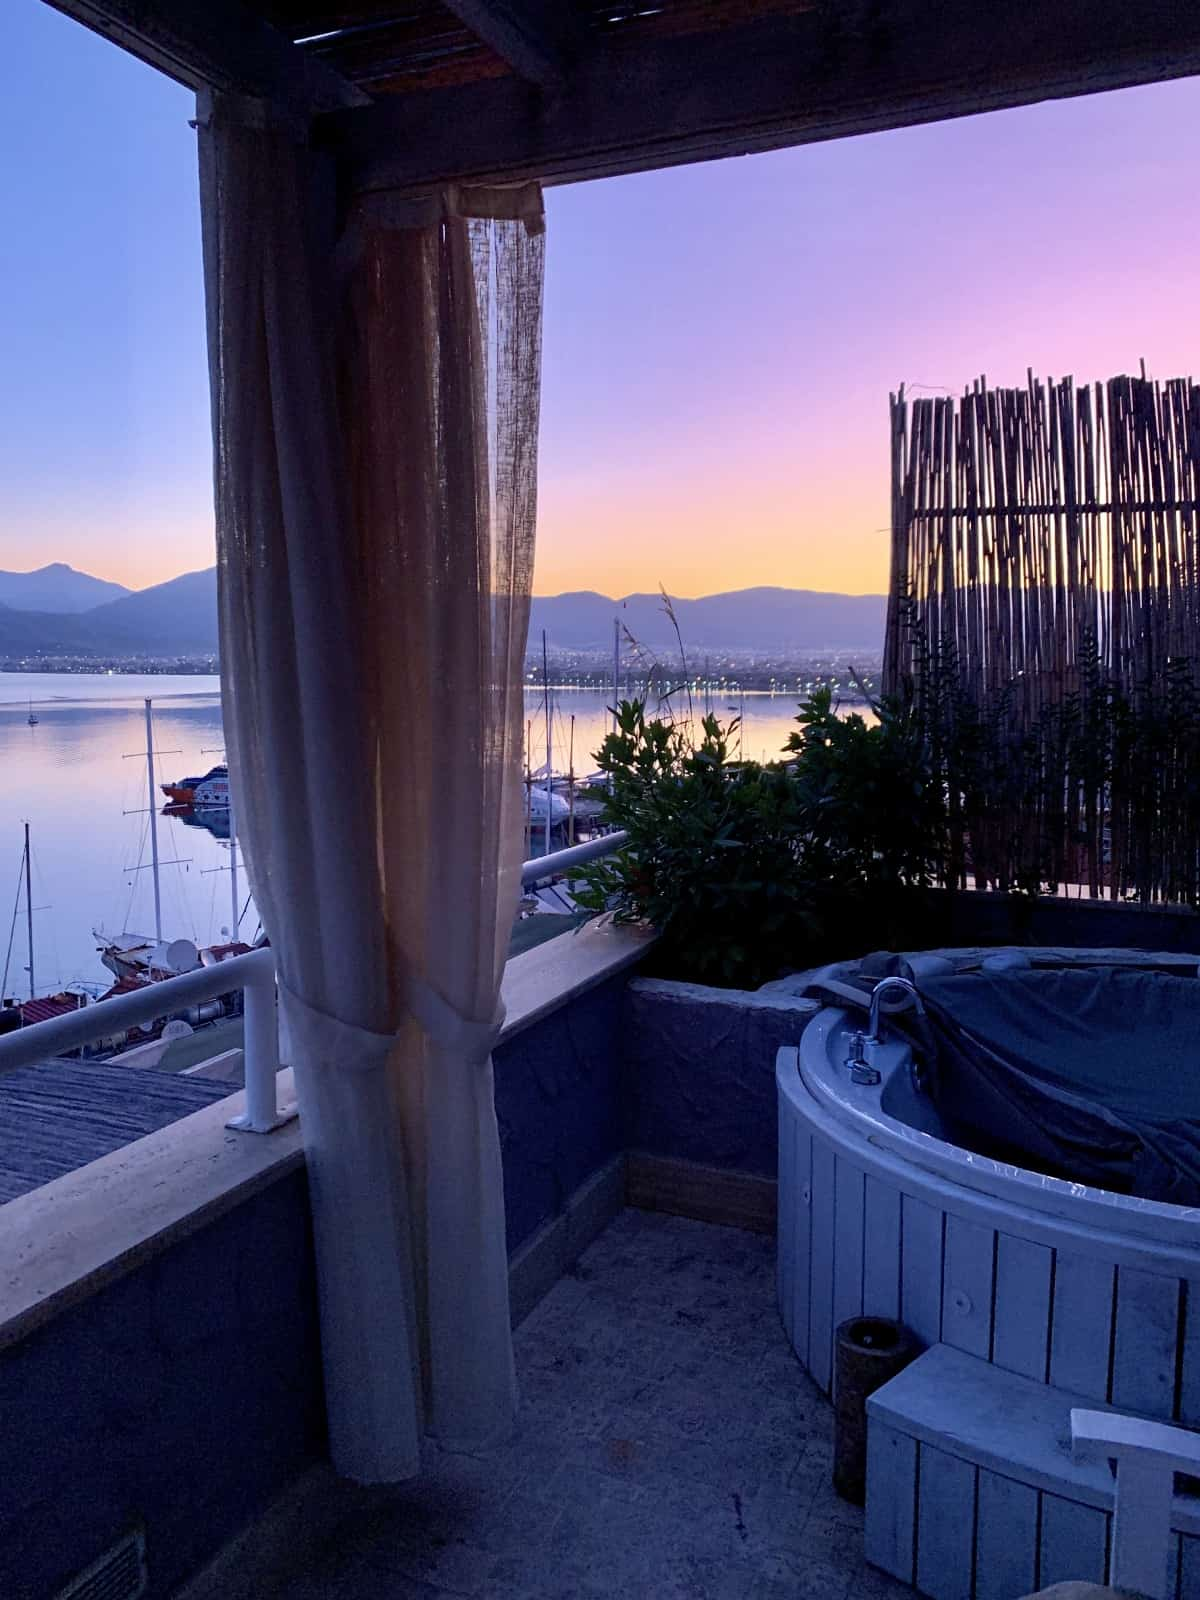 Peaceful sunrise from my balcony - Hotel Unique, Fethiye, Turkey